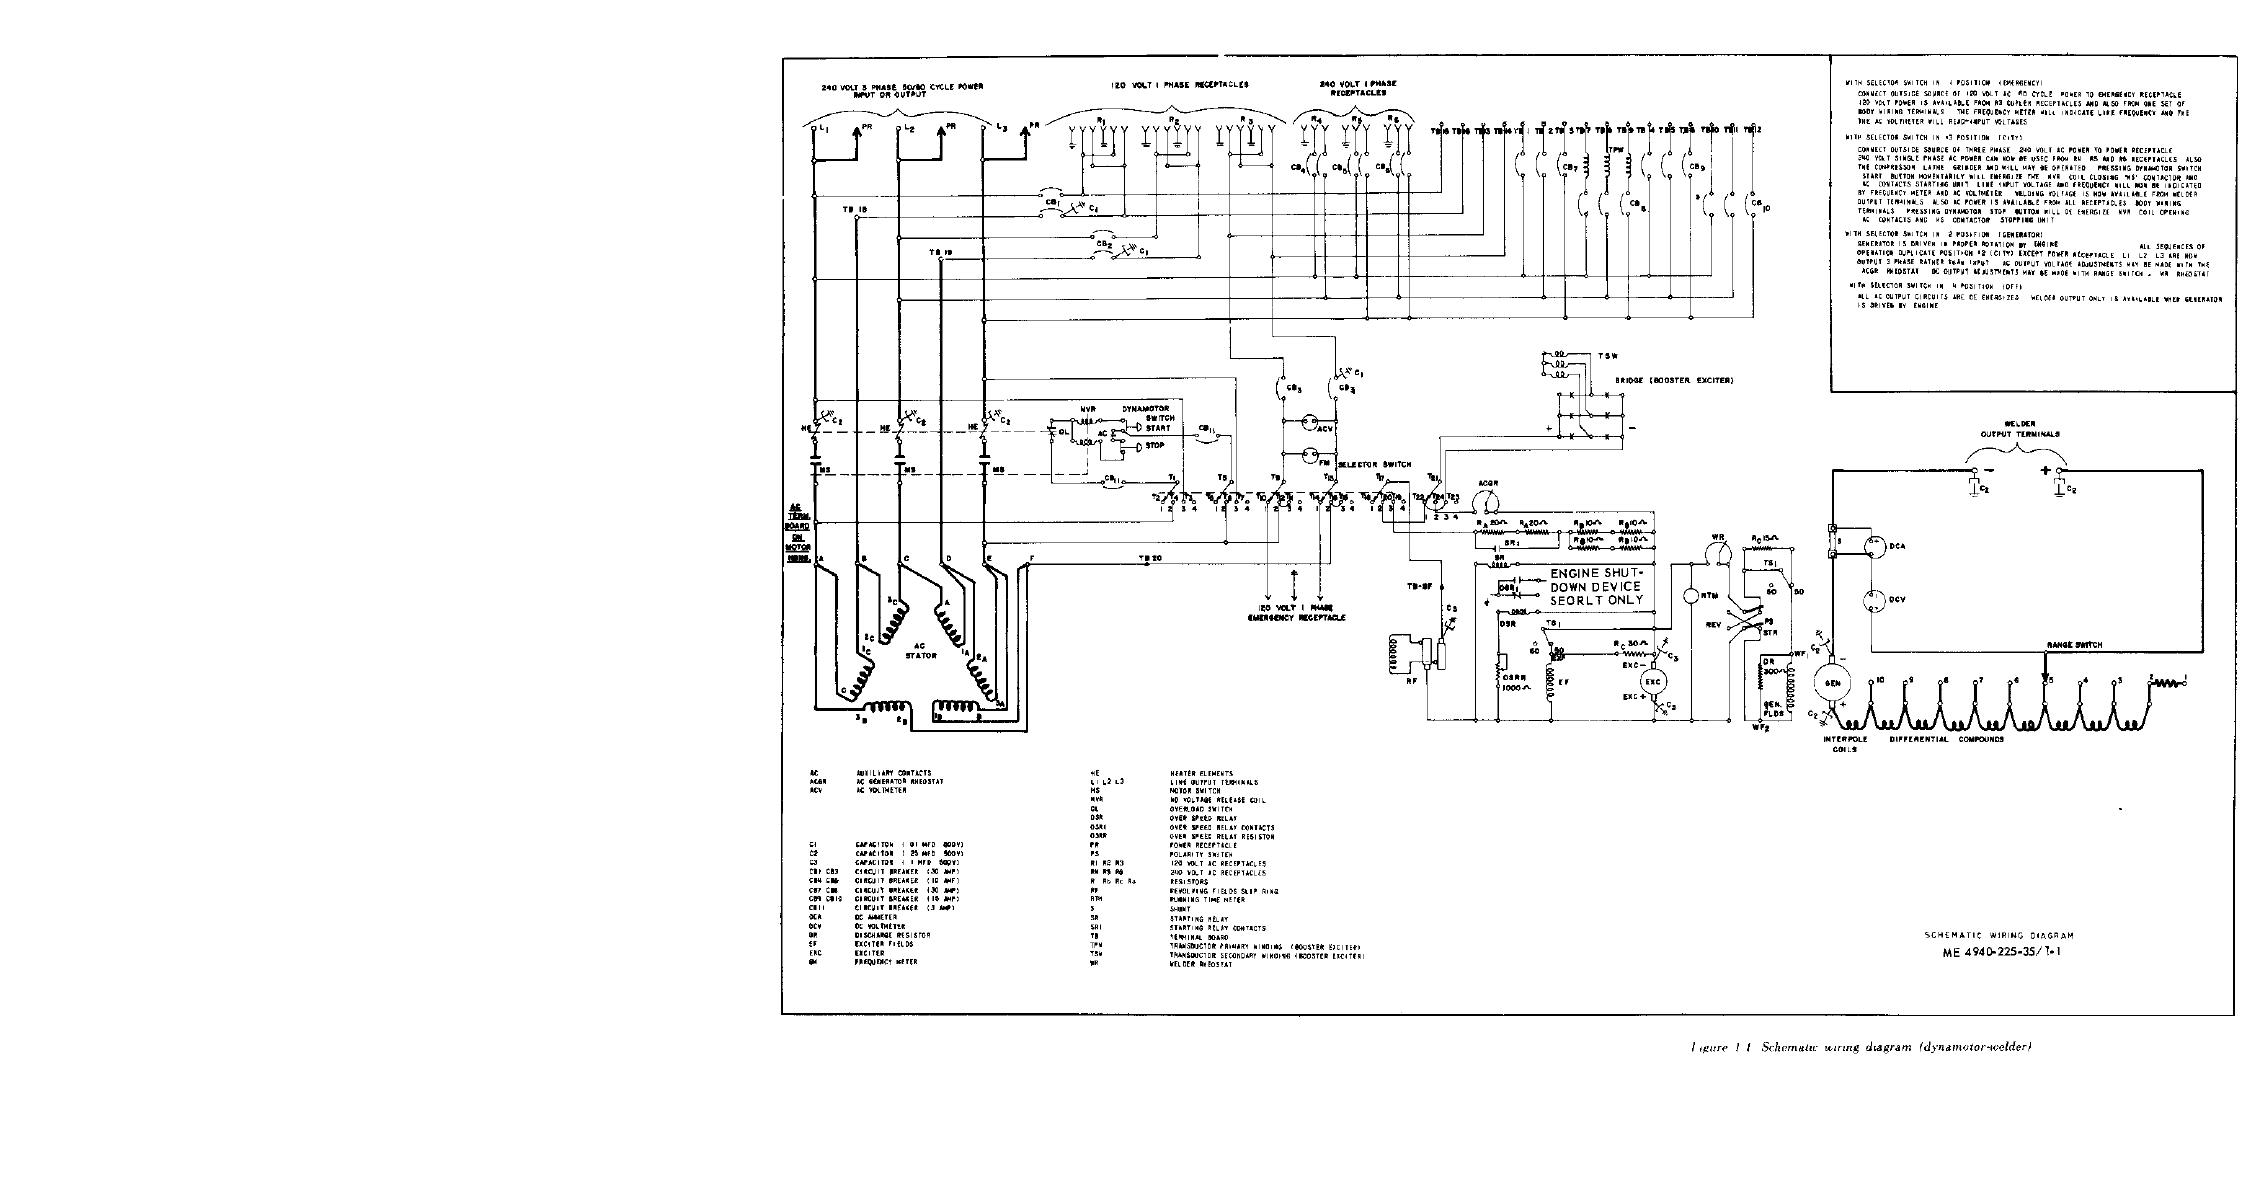 Figure 1 1 Schematic Wiring Diagram Dynamotor Welder